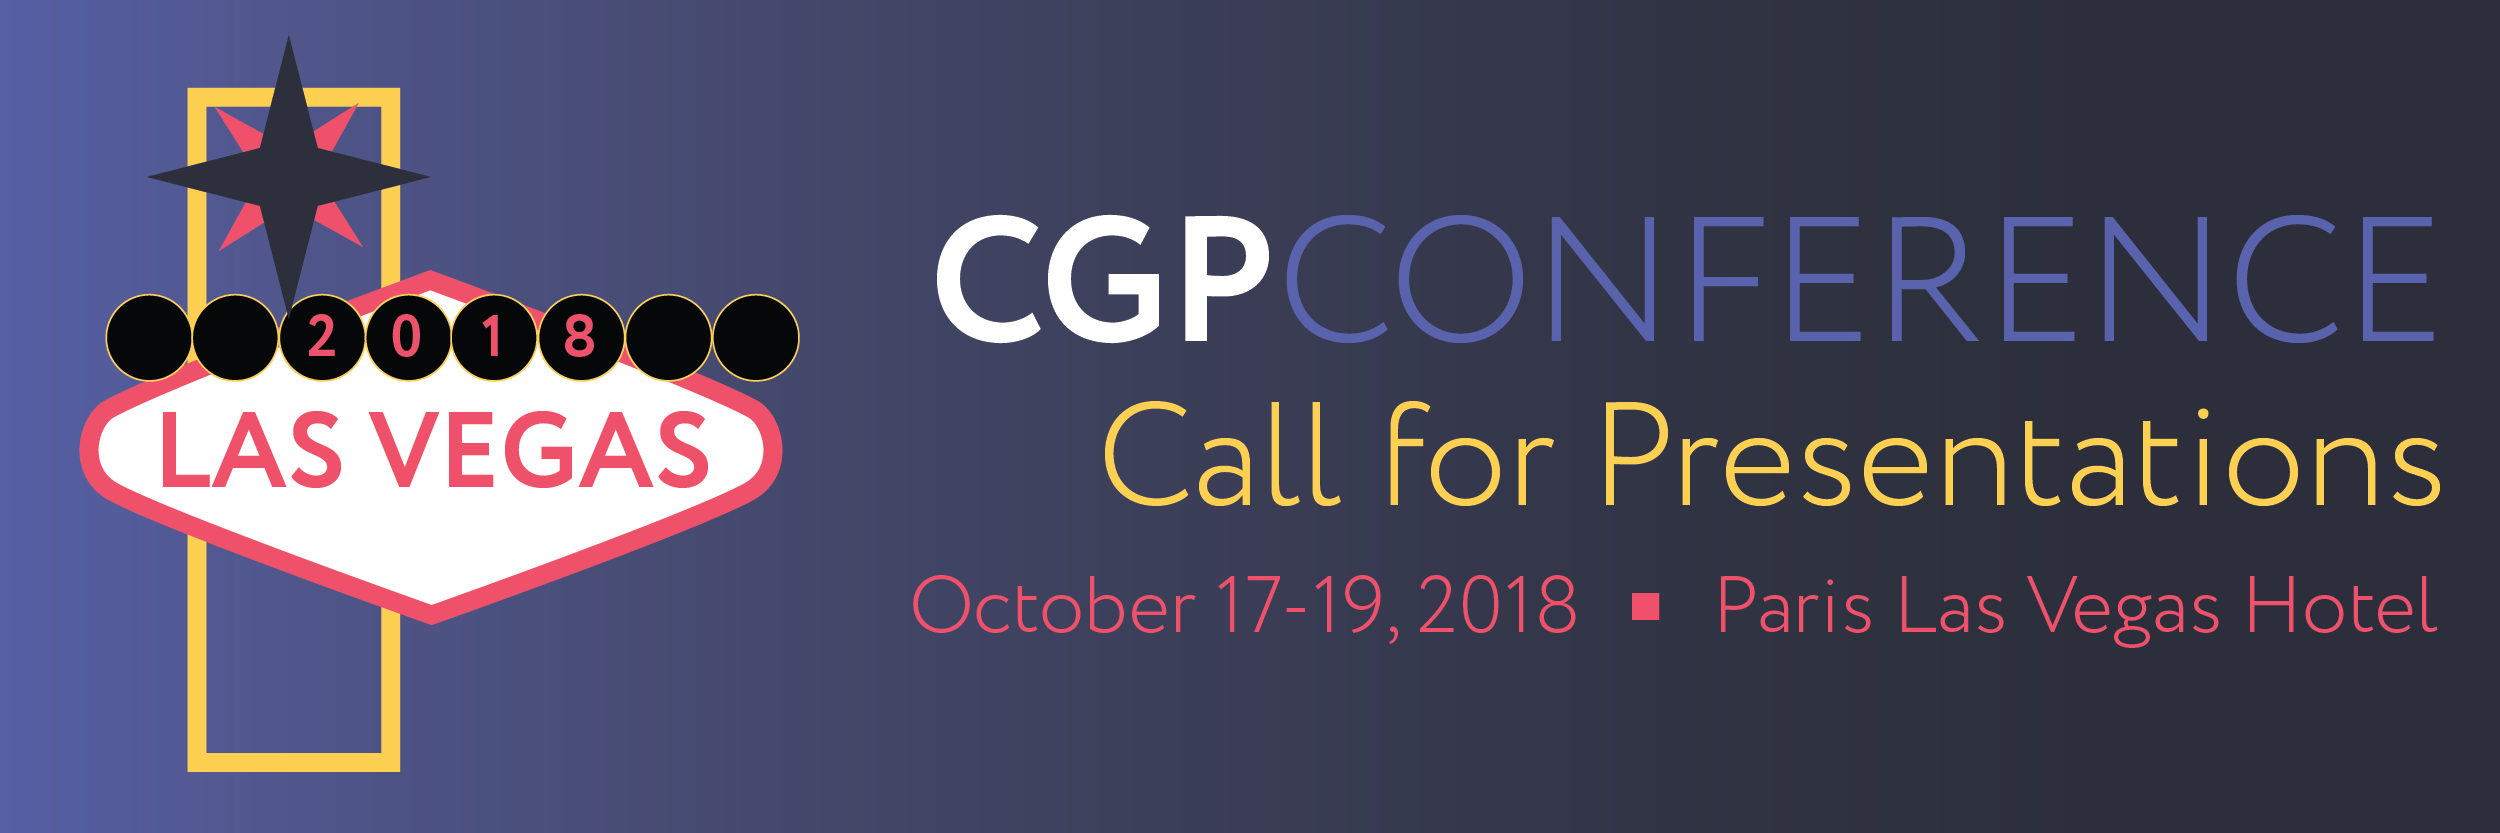 CGP Conference